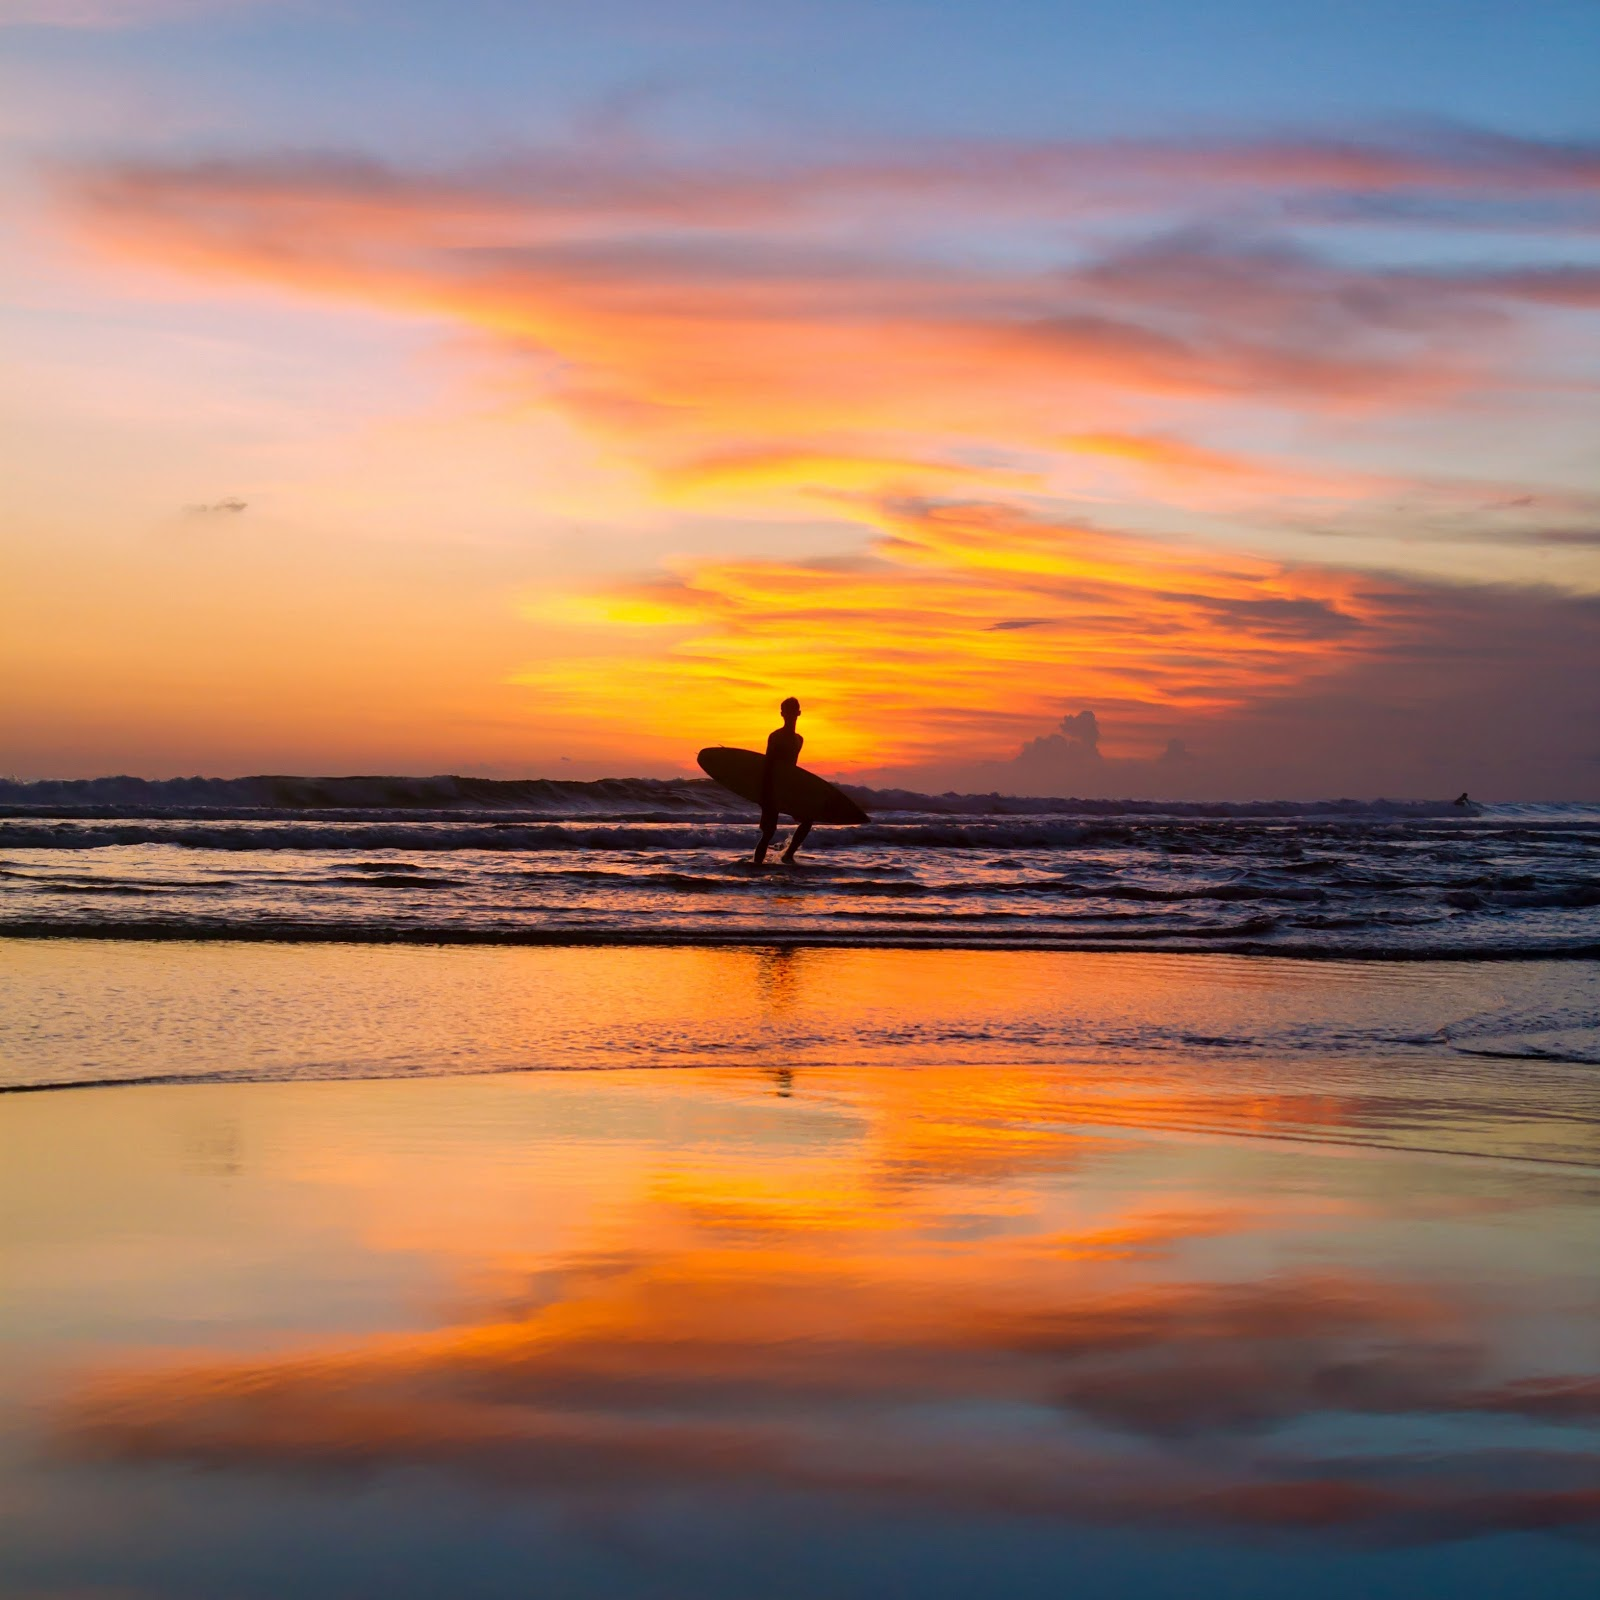 Surfer at Sunset in Canggu, Bali, Indonesia